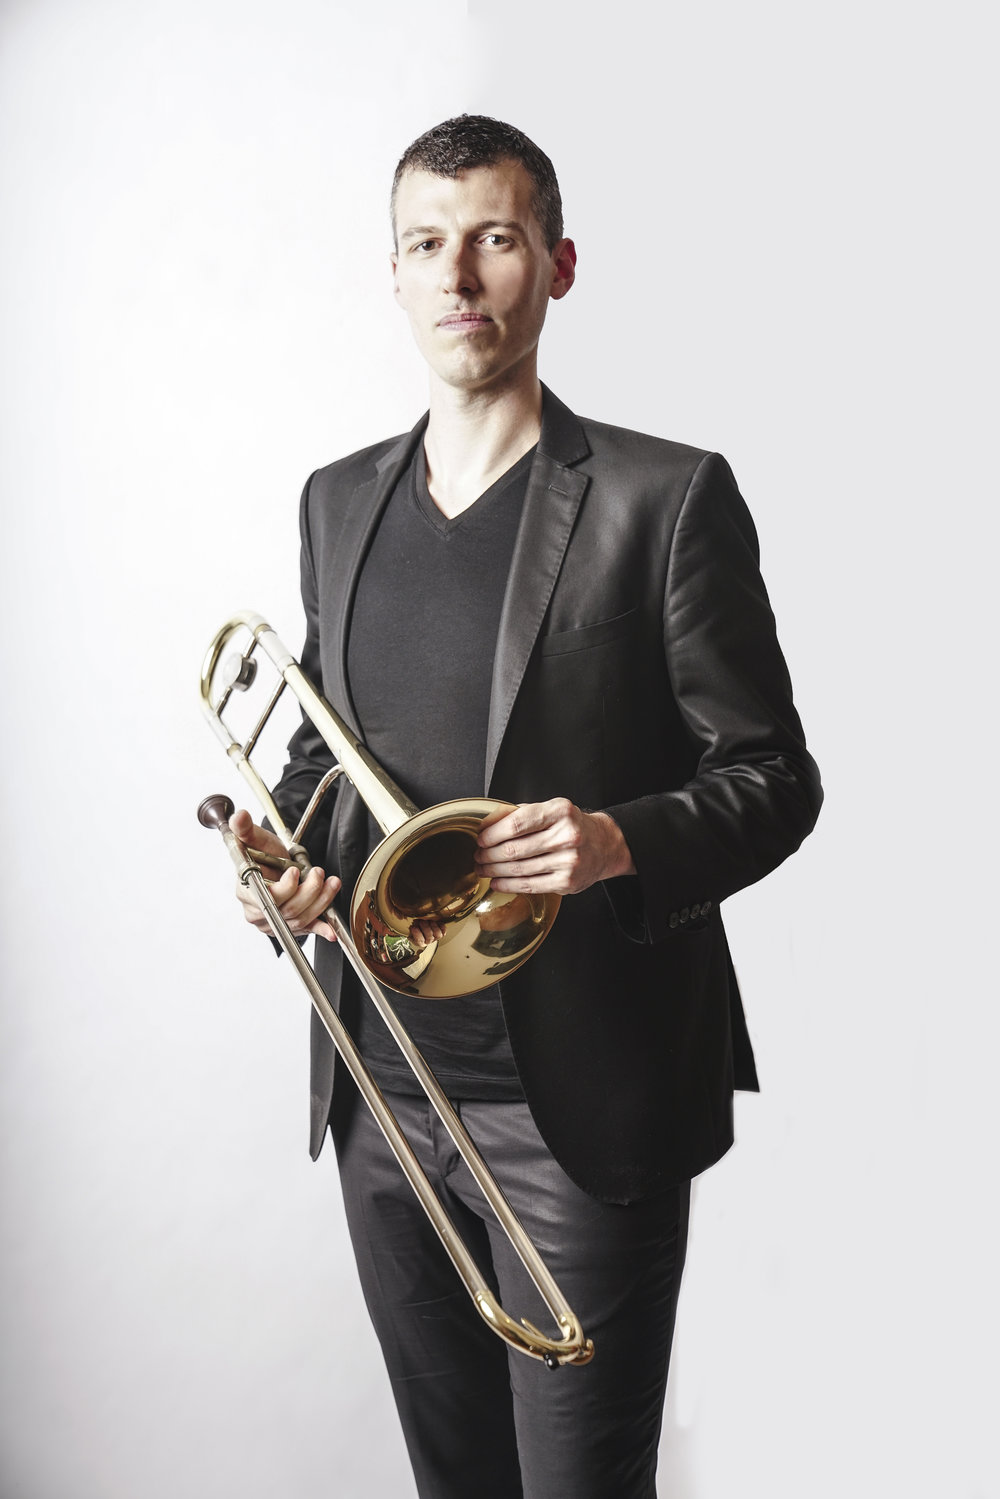 Nick Finzer Jazz Trombonist, Composer, Producer